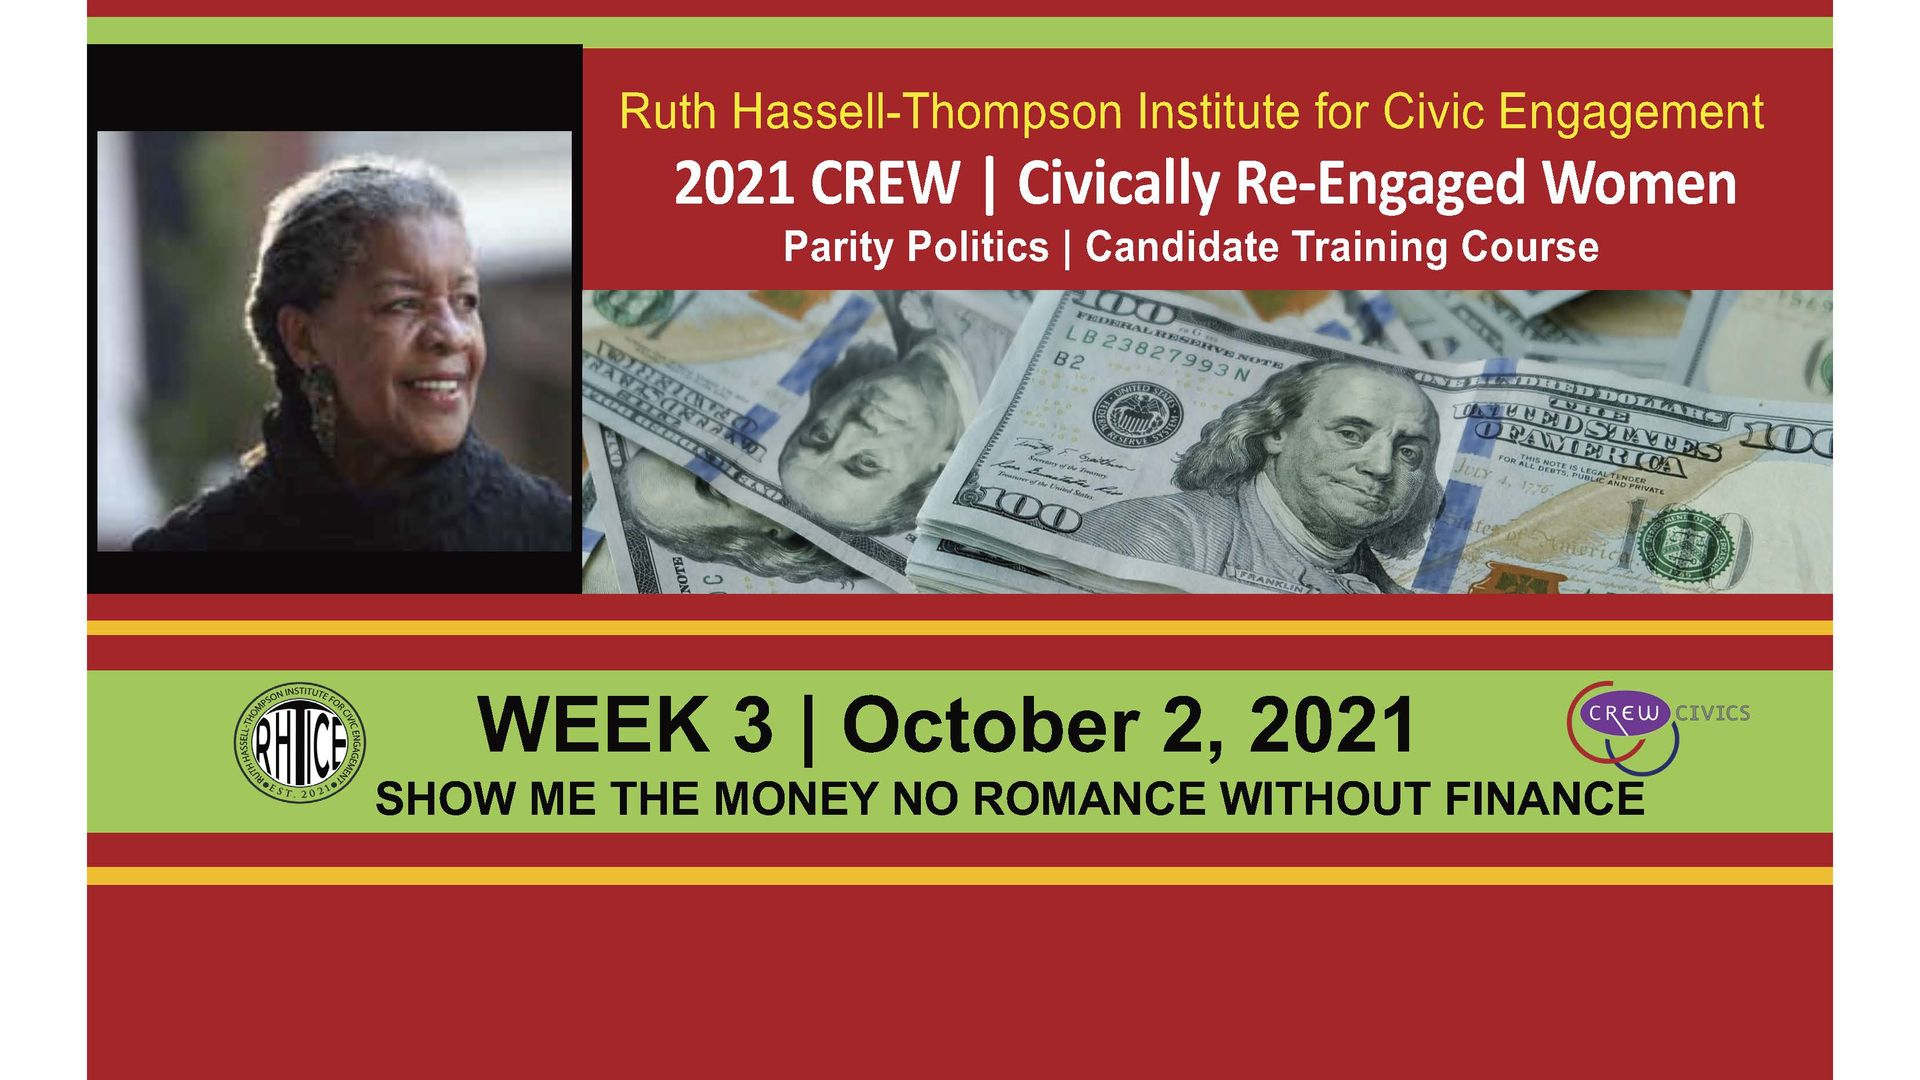 Week 3   RHTICE Live - Show Me The Money: No Romance without The Finance